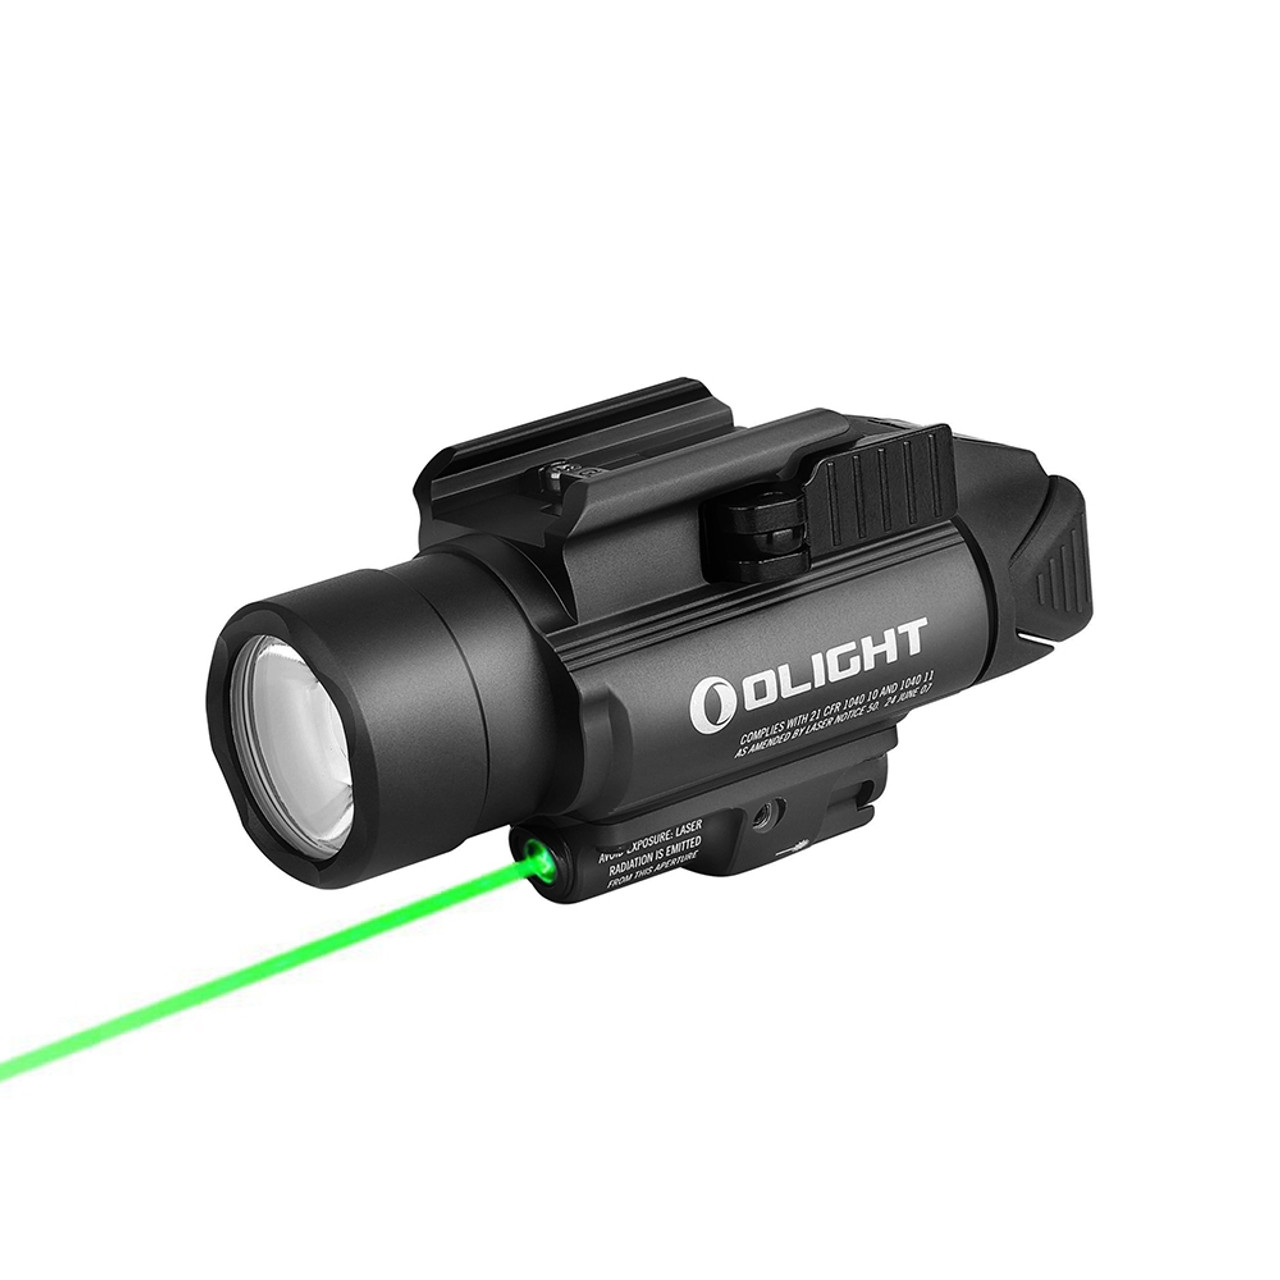 OLight BALDR PRO (Green Laser) - (NOT rechargeable)